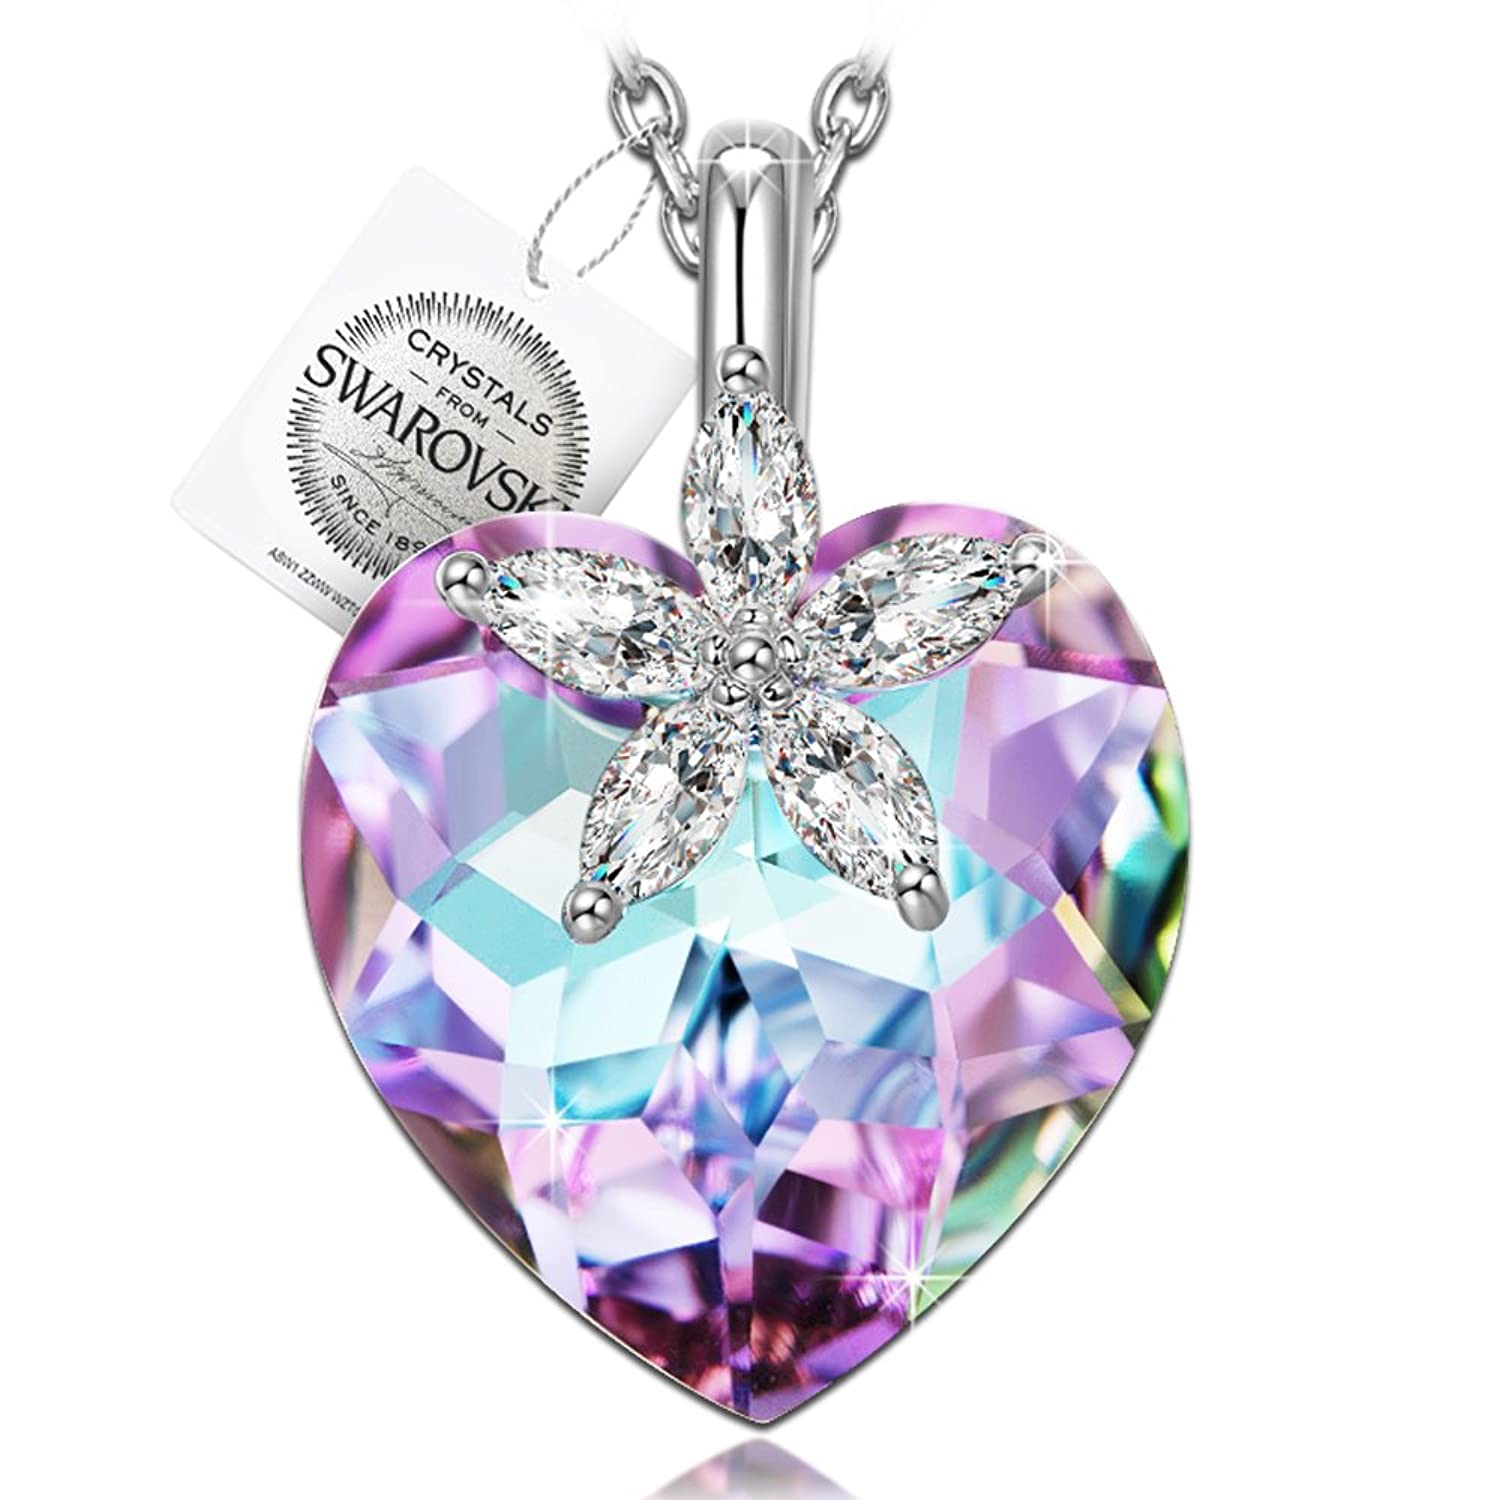 """♥Mothers Day Gifts for Women♥ NINASUN """"Bauhinia Blossom"""" 925 Sterling Silver Flower Design Heart Pendant Necklace Fine Jewelry for Women, Crystals from Swarovski"""